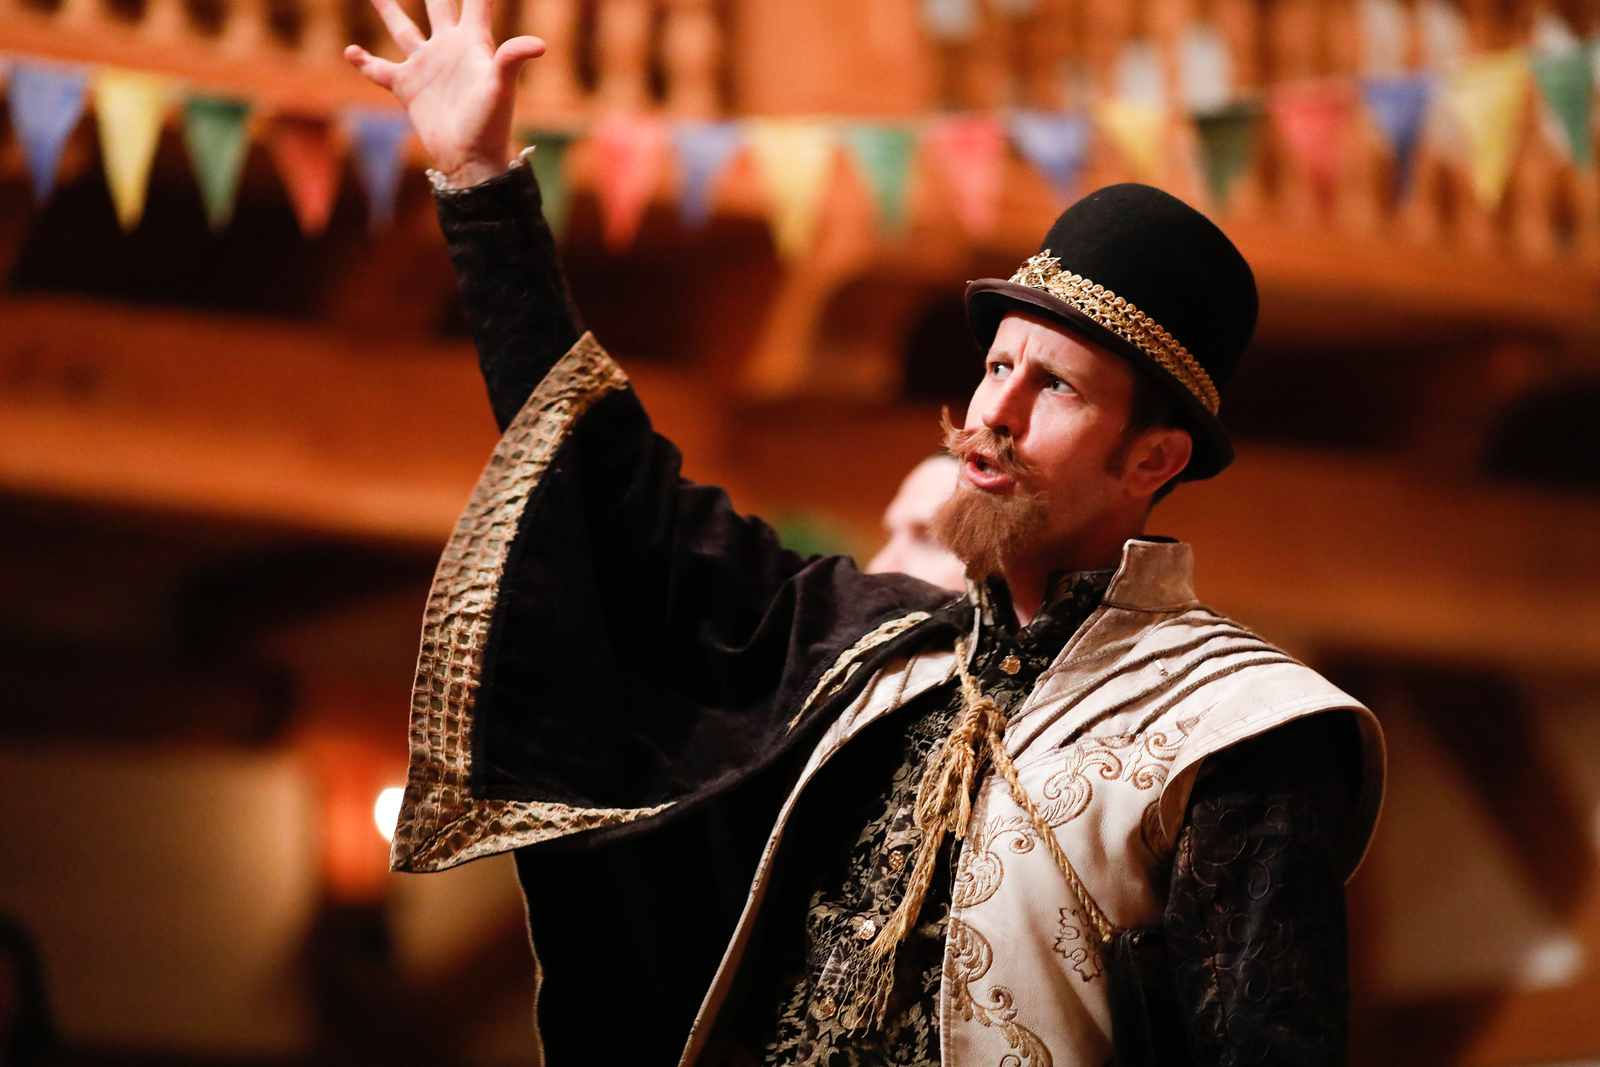 Chris Johnston as Don Armado in LOVE'S LABOUR'S LOST. Photo by Lindsey Walters.